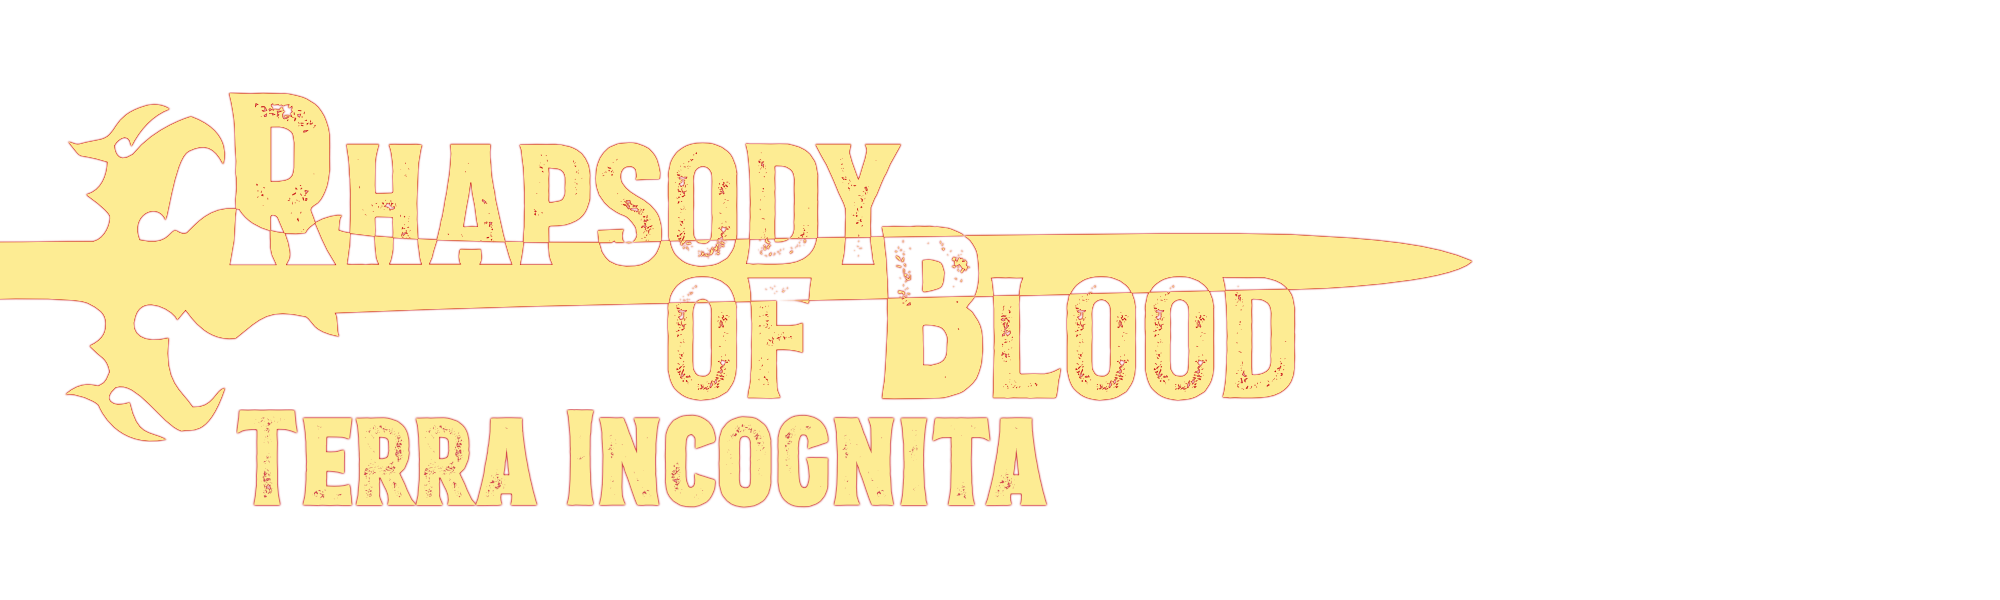 Rhapsody of Blood: Terra Incognita